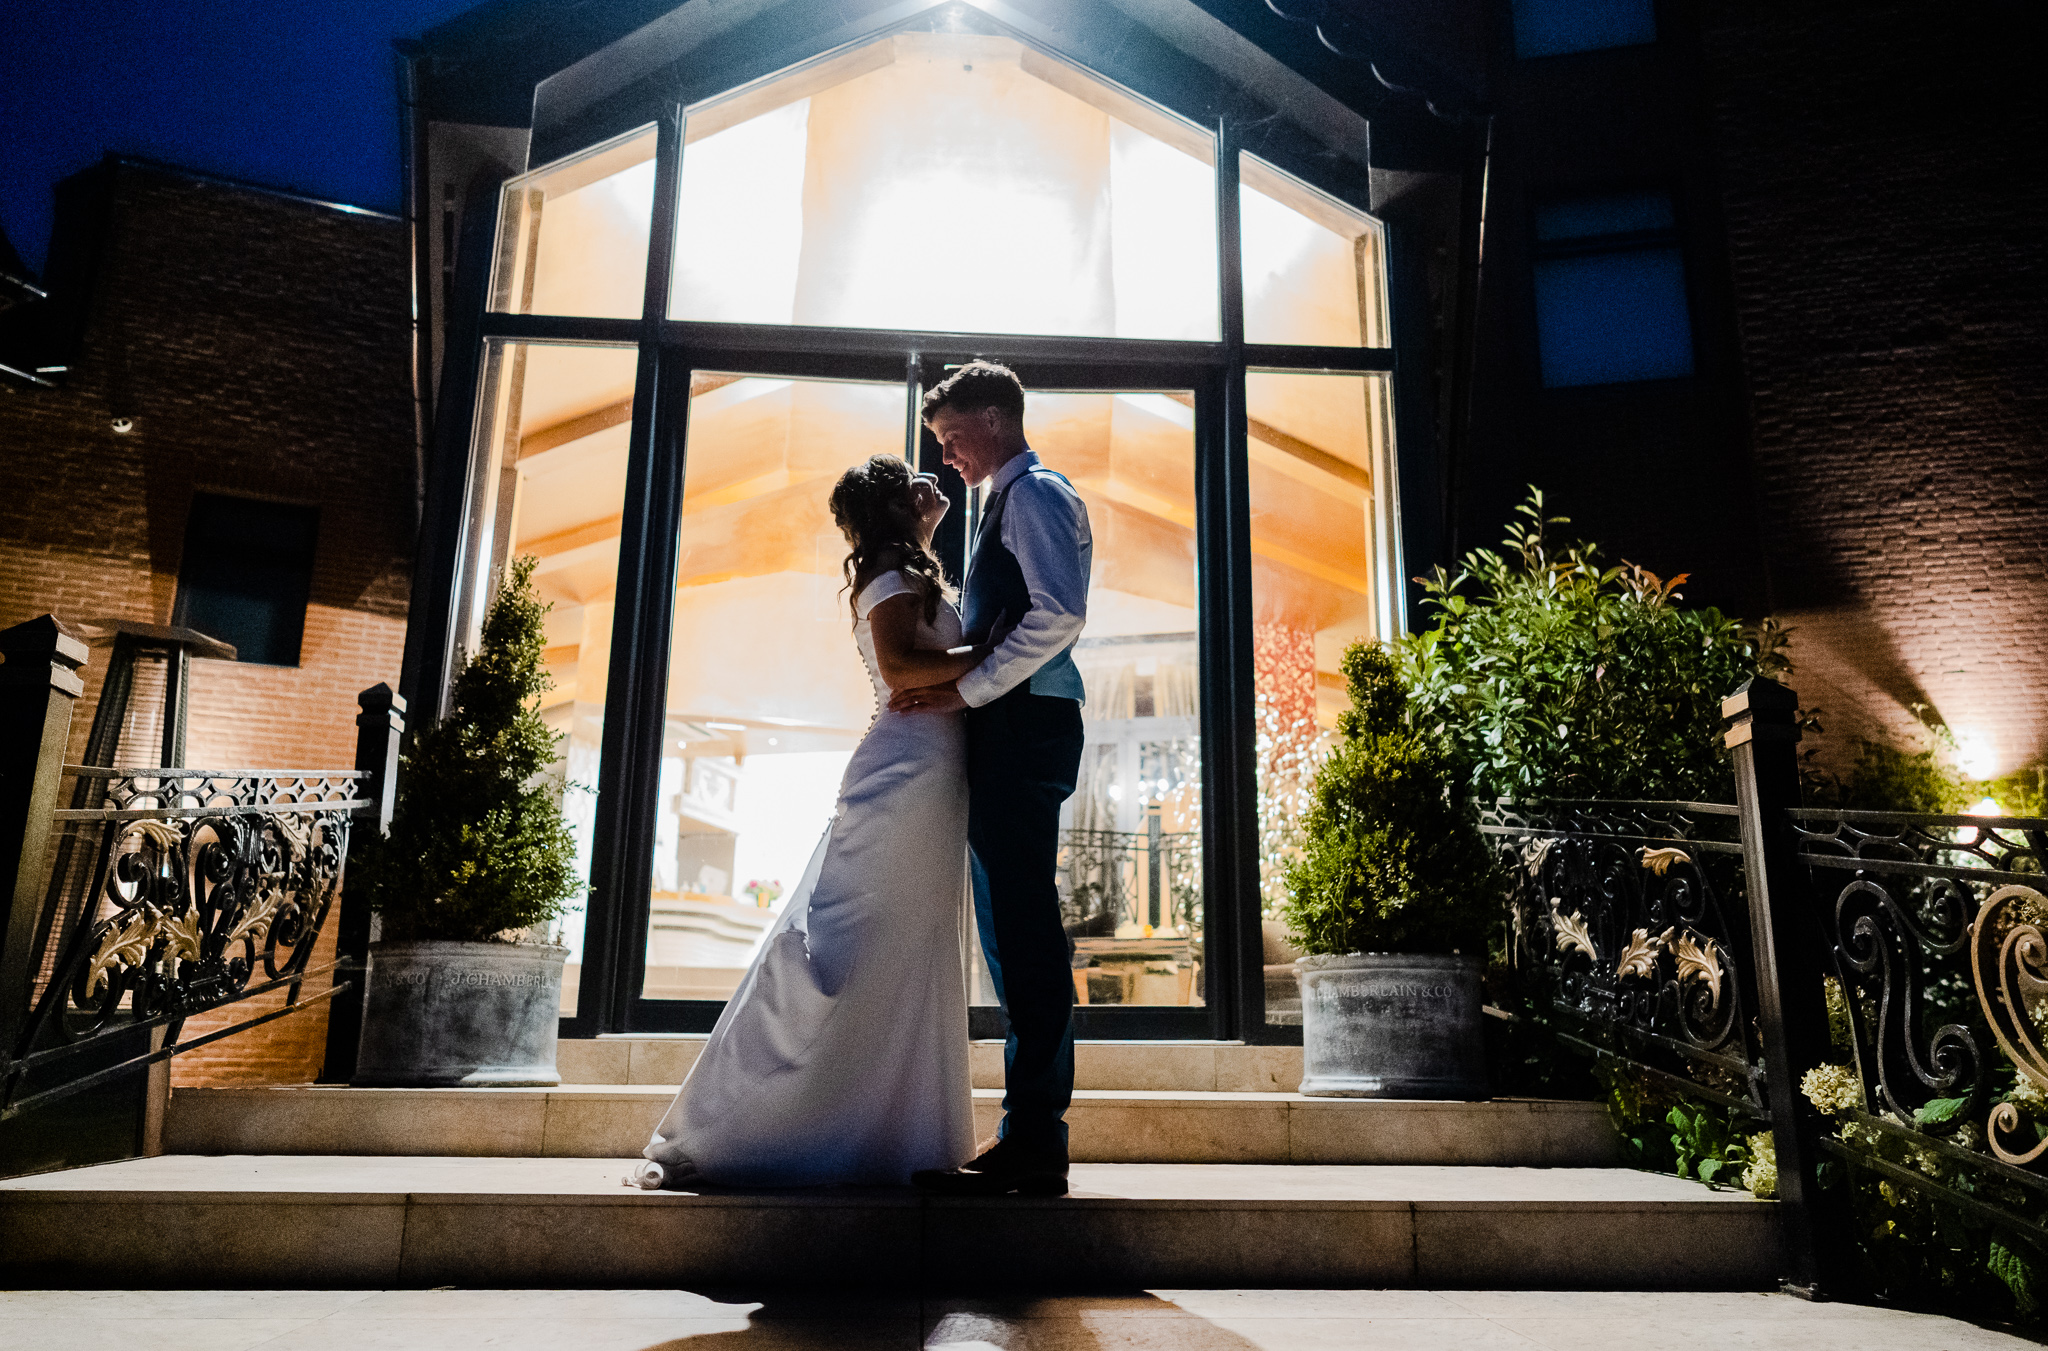 almost silhouette shot of brdie and groom at night in front of guildford manor hotel